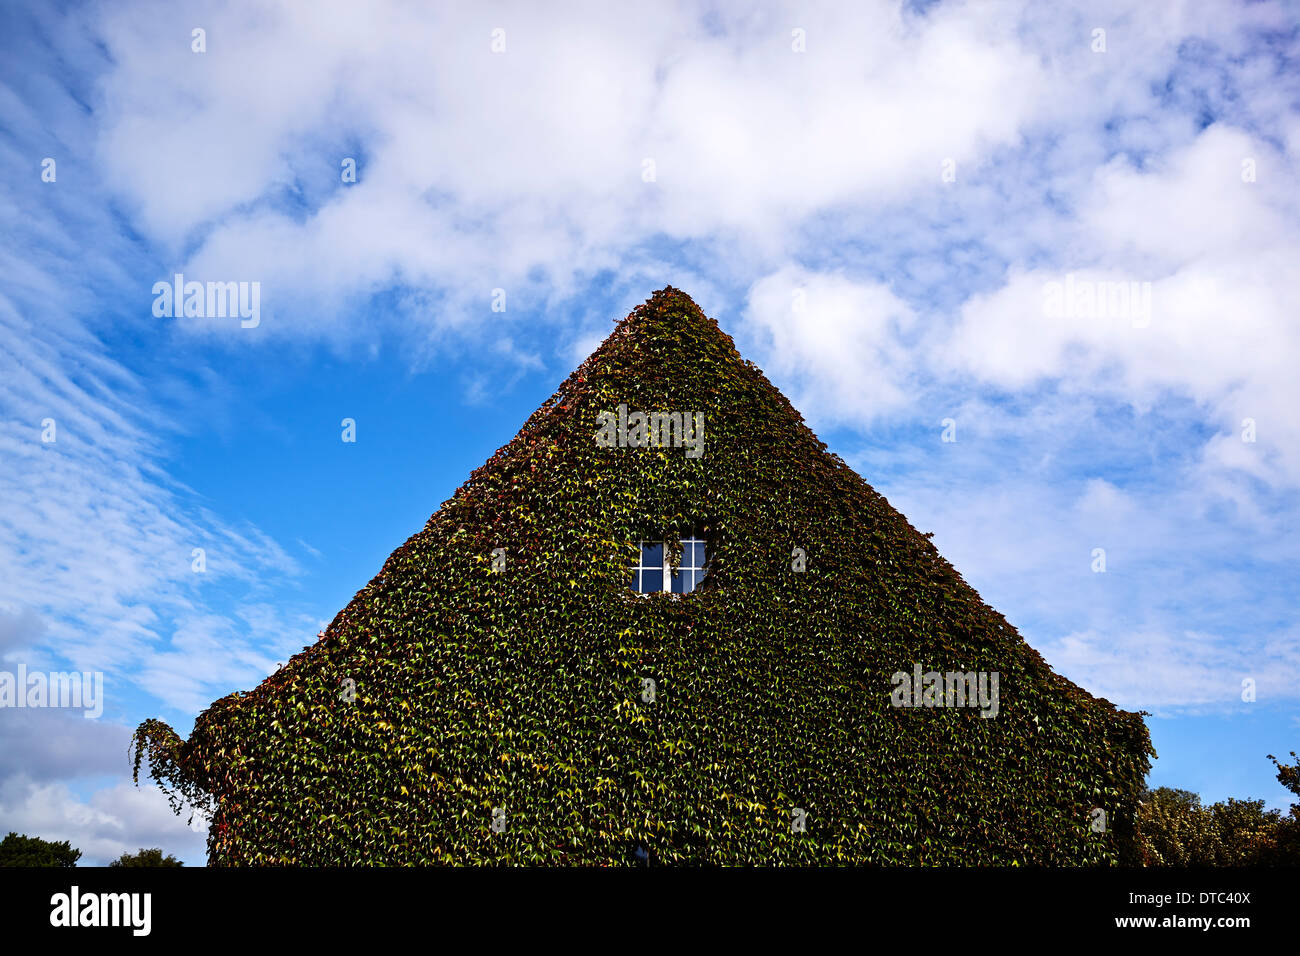 House gable overgrown with ivy - Stock Image